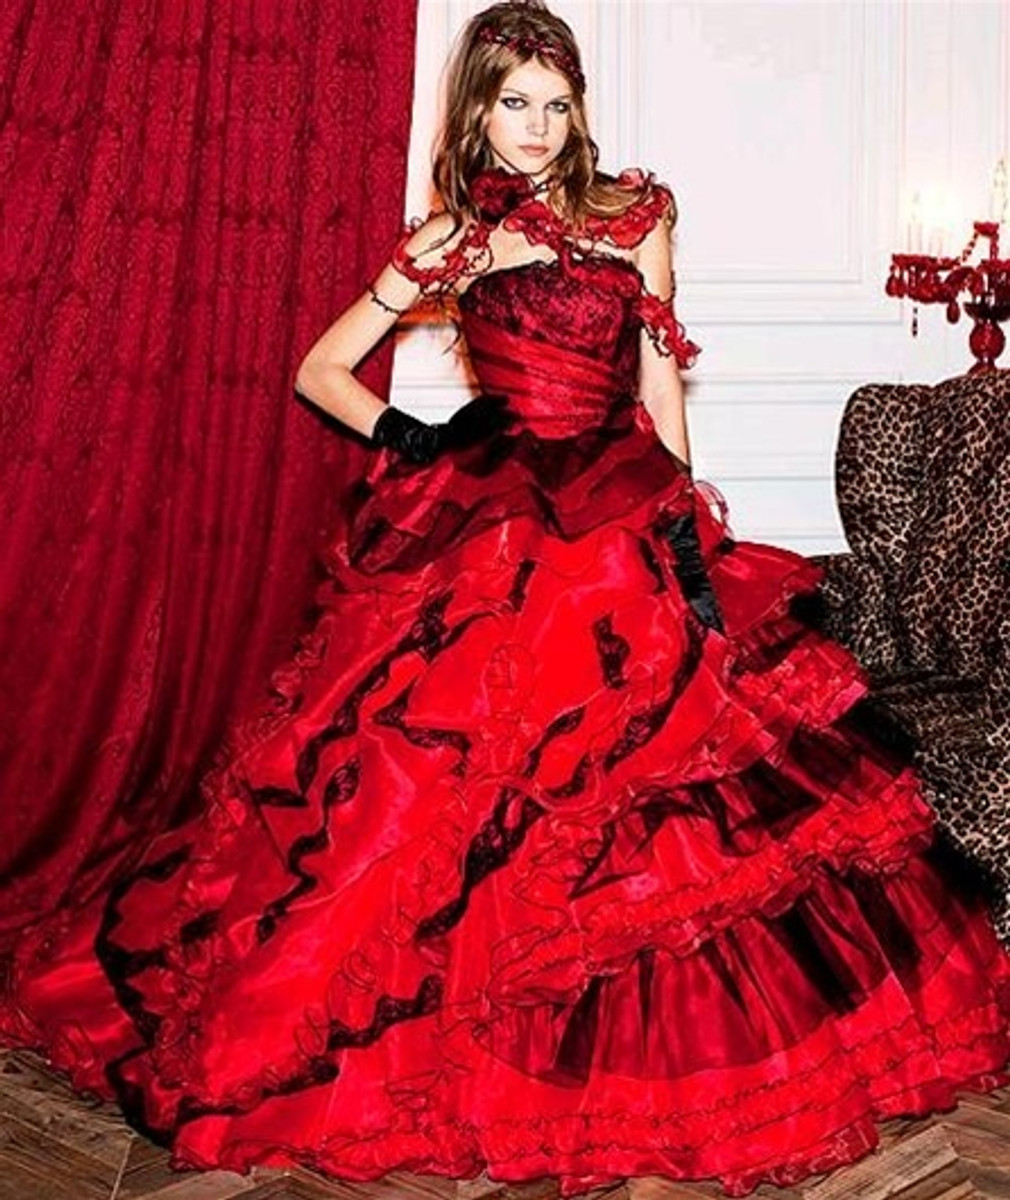 Red Wedding Dress with Black Details on it